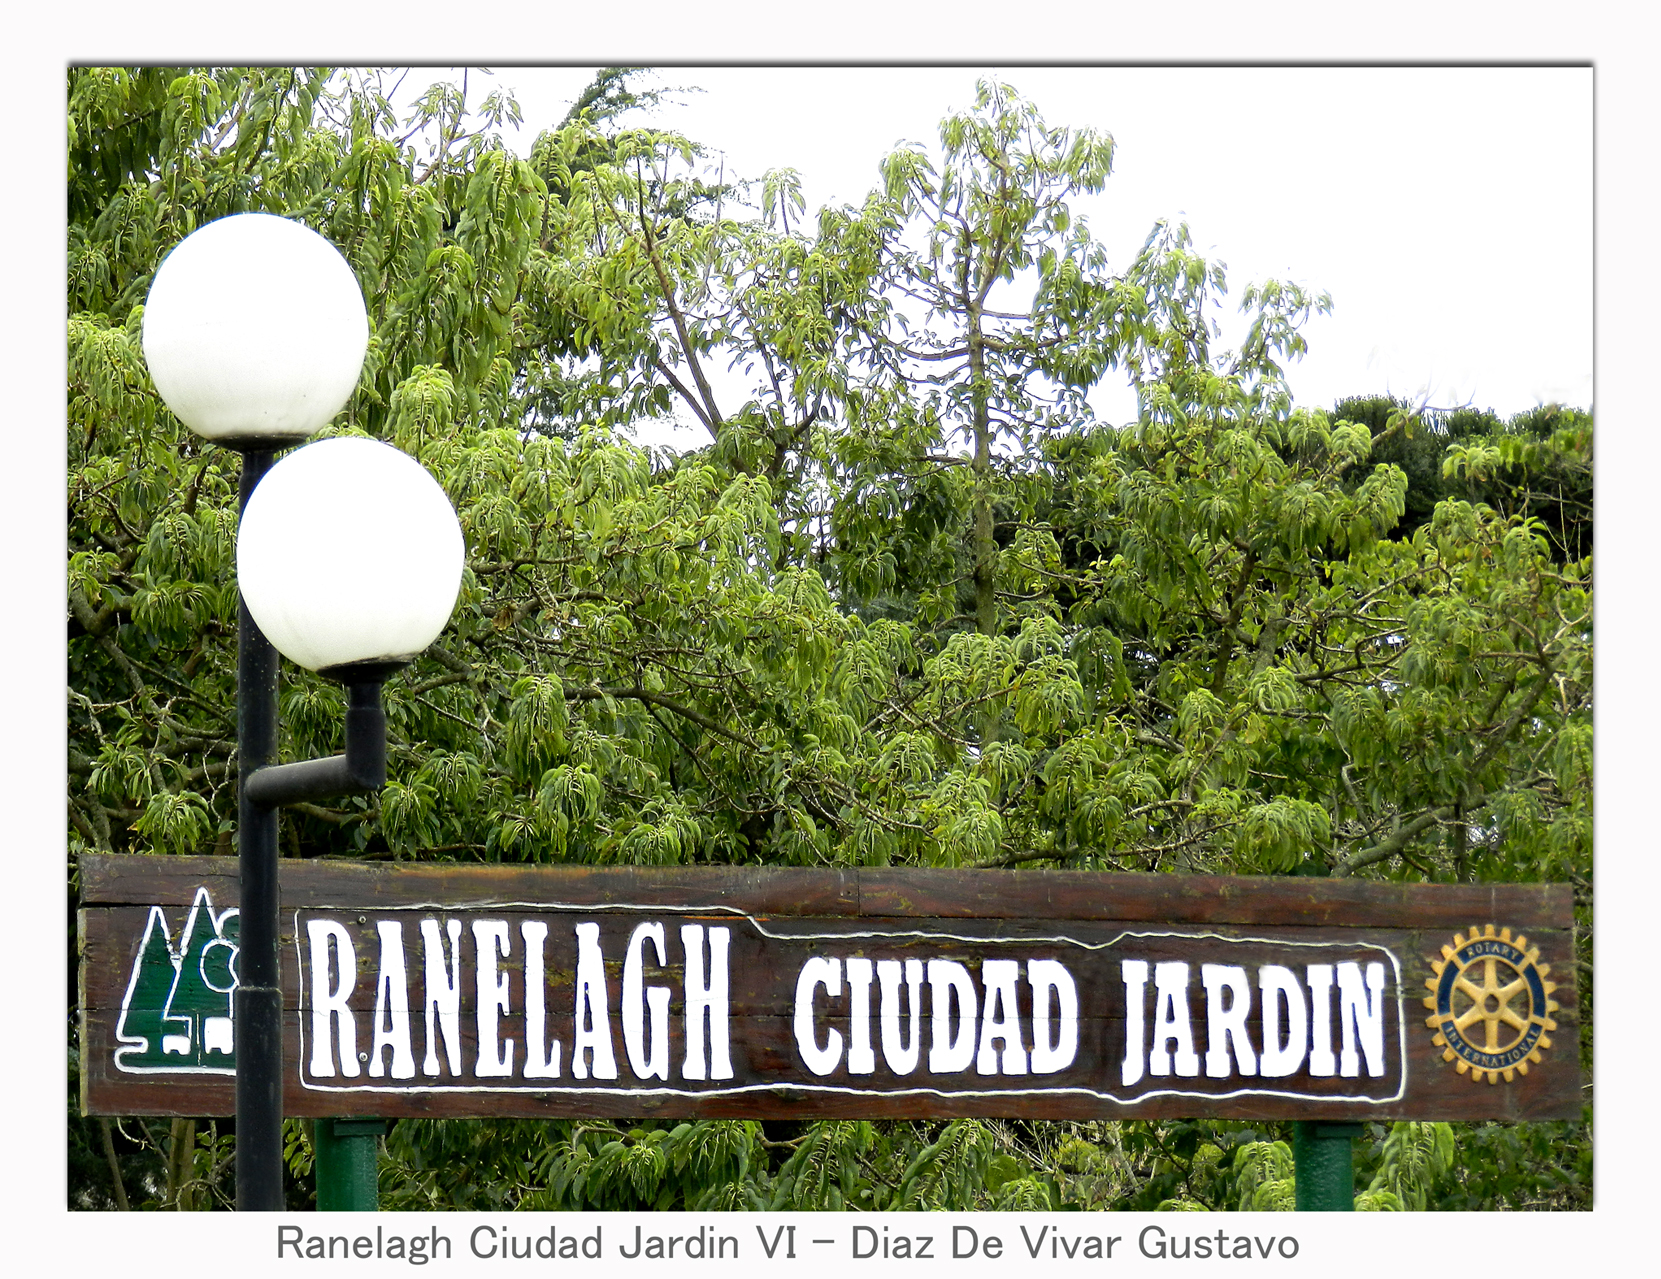 But Jardin Génial File Ranelagh Ciudad Jardin Vi Diaz De Vivar Gustavo Of 38 Best Of but Jardin